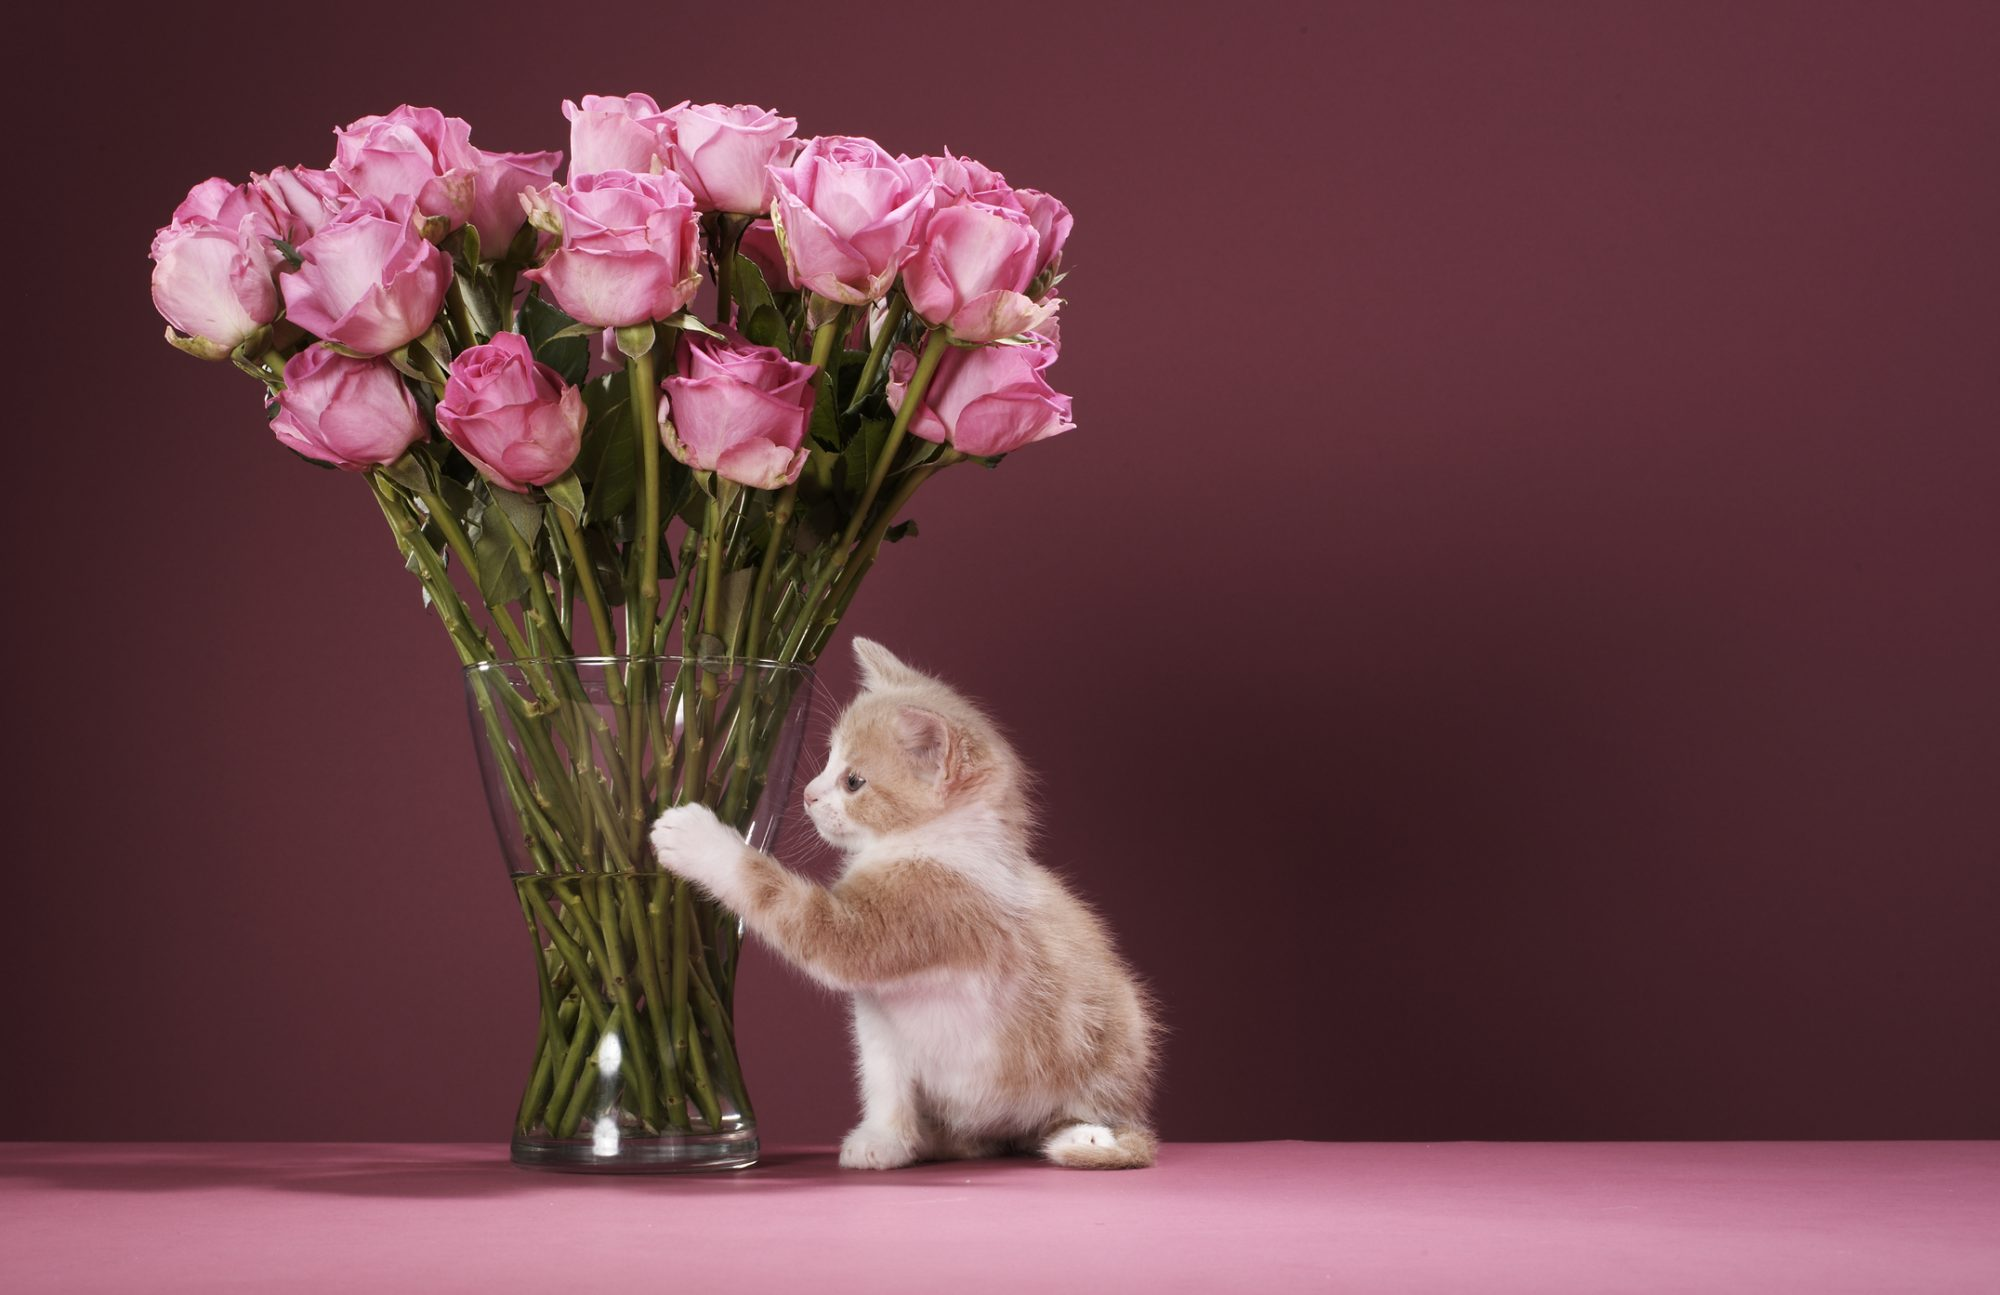 Are Roses Poisonous to Cats?